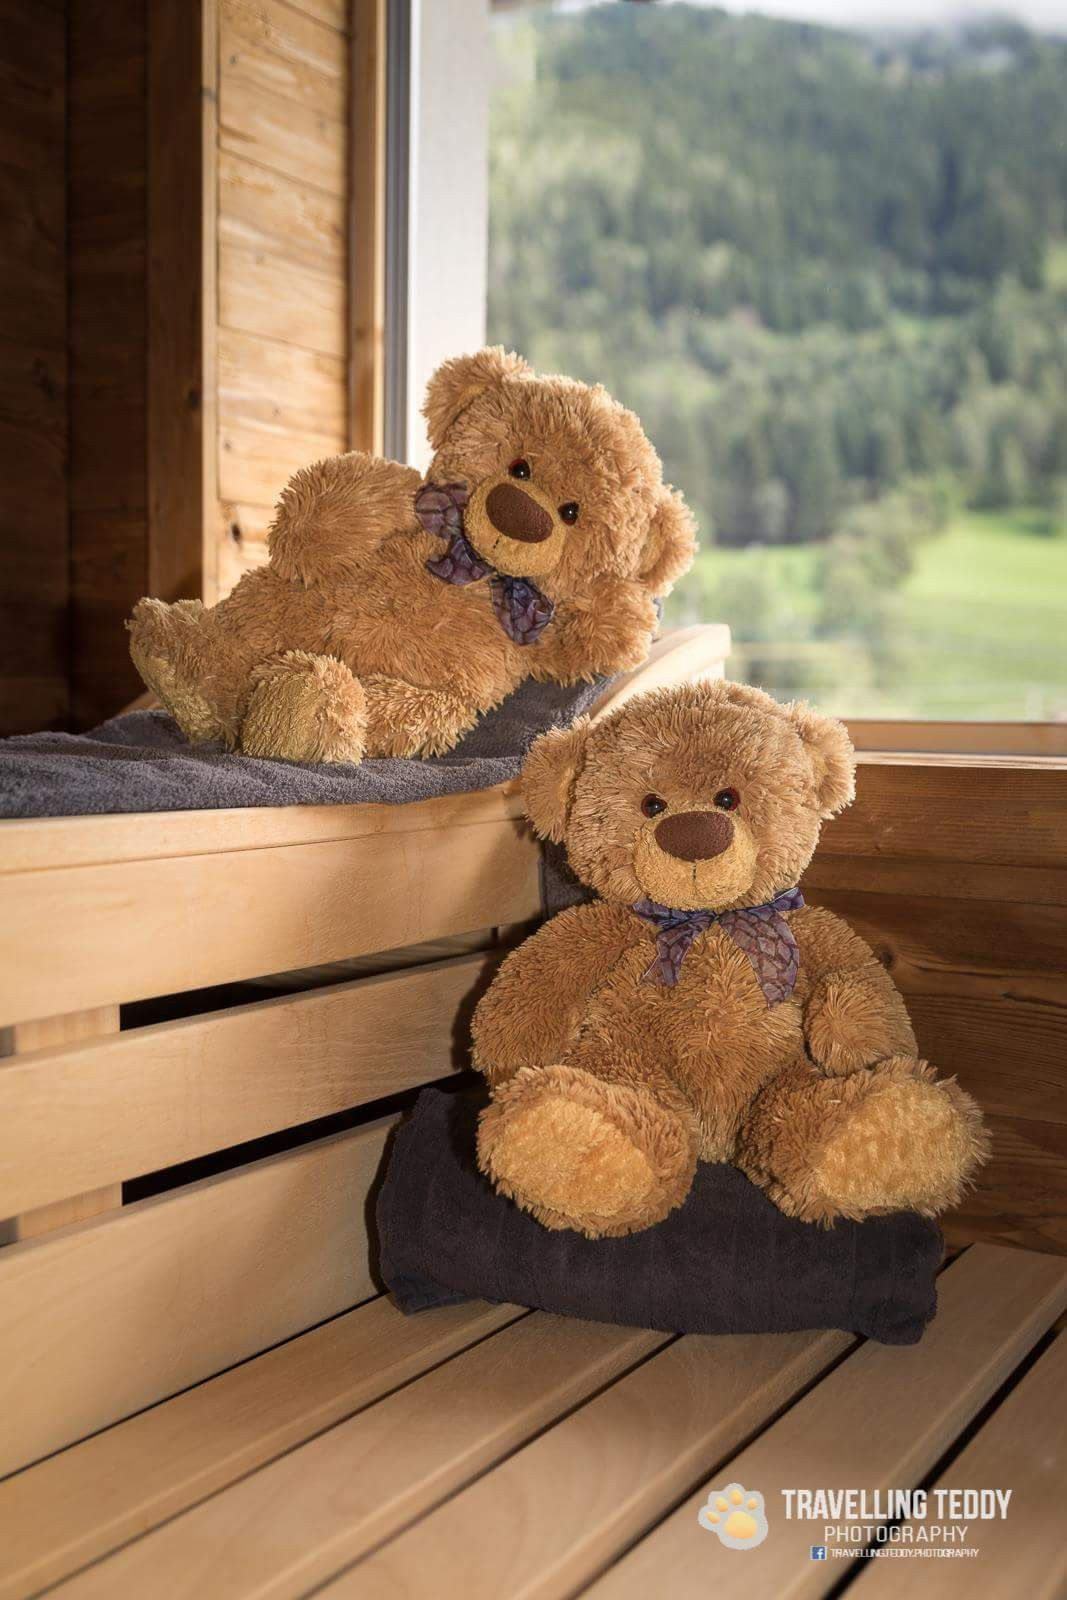 Just Chilling Together Teddybear In 2020 Teddy Bear Wallpaper Teddy Bear Pictures Teddy Bear Doll